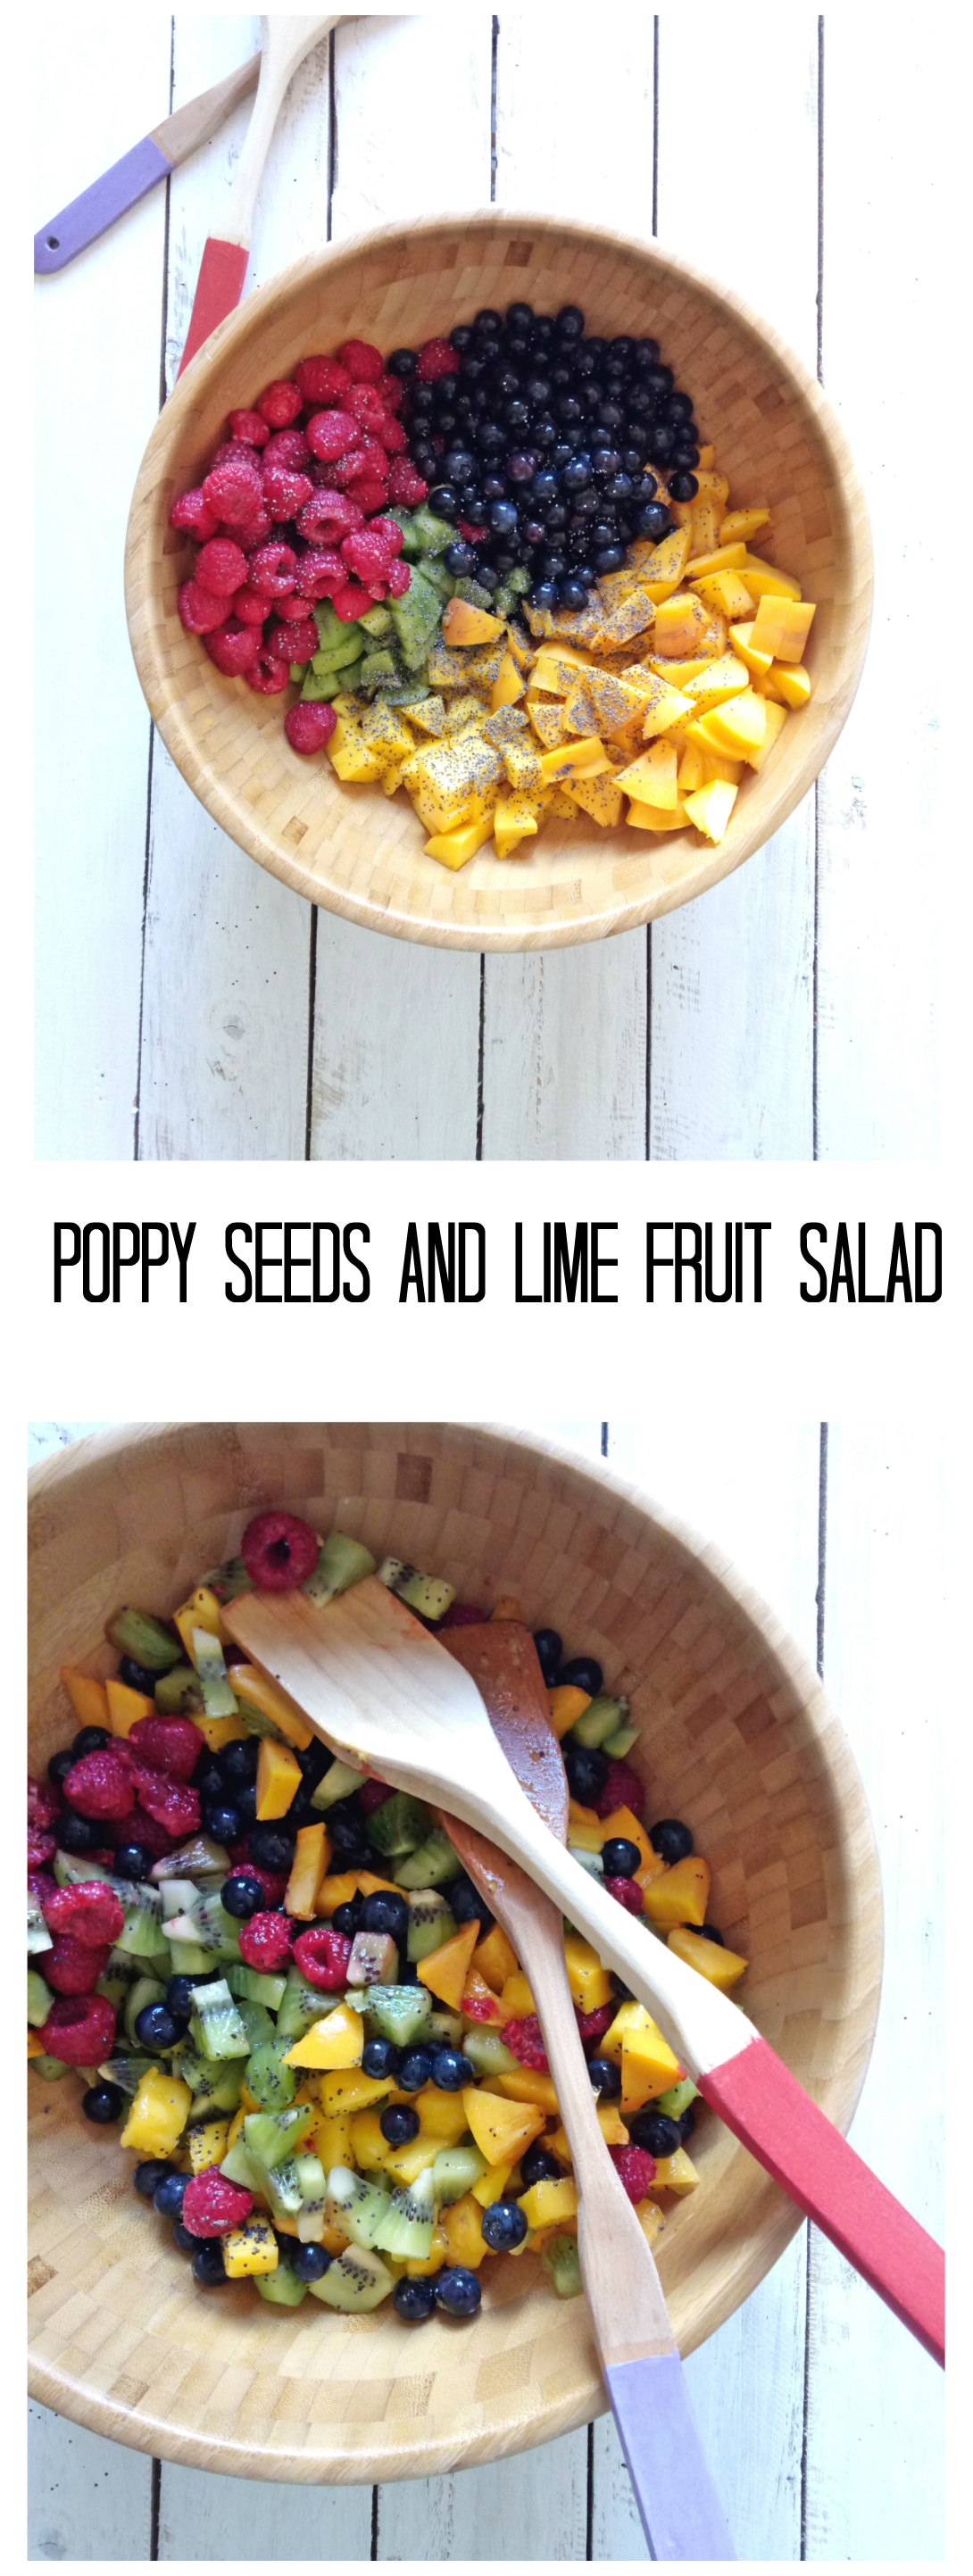 Poppy Seeds and Lime Fruit Salad